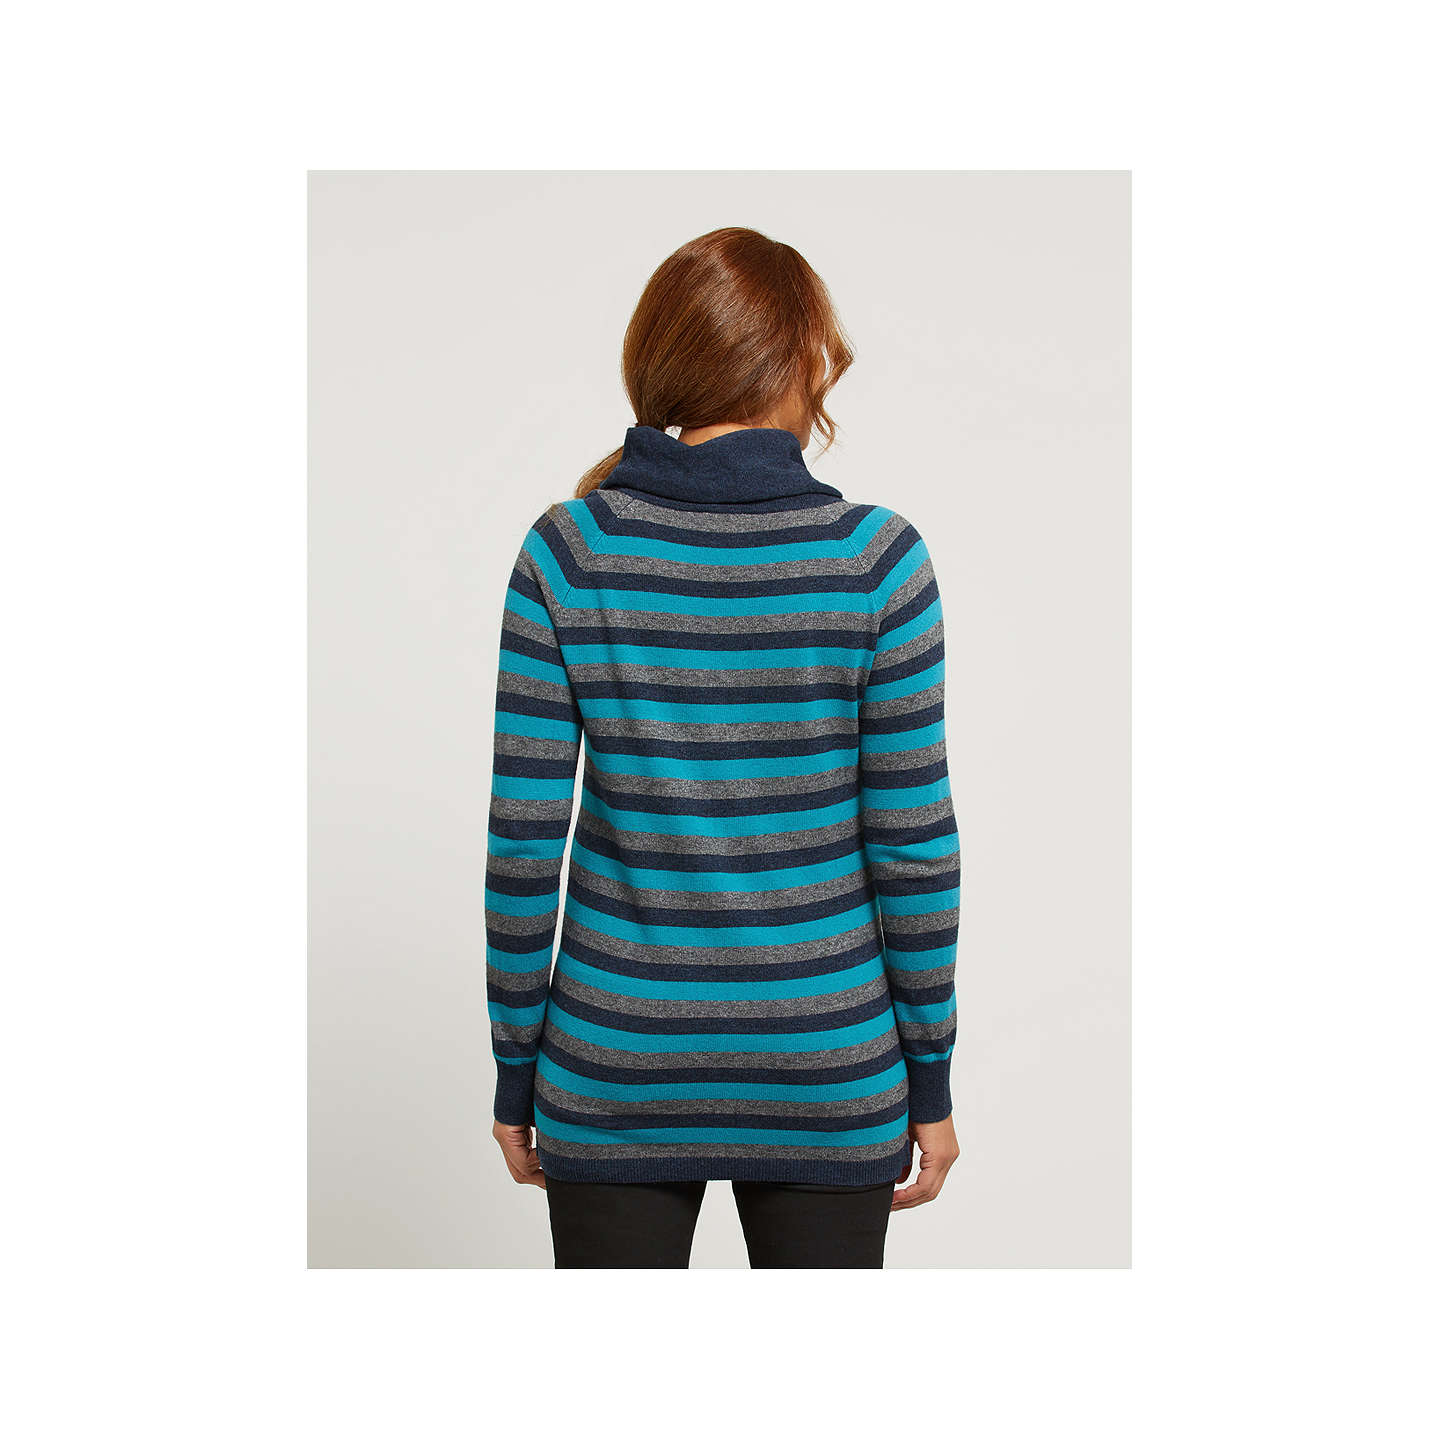 BuyEast Cowl Neck Jumper, Multi, XS Online at johnlewis.com